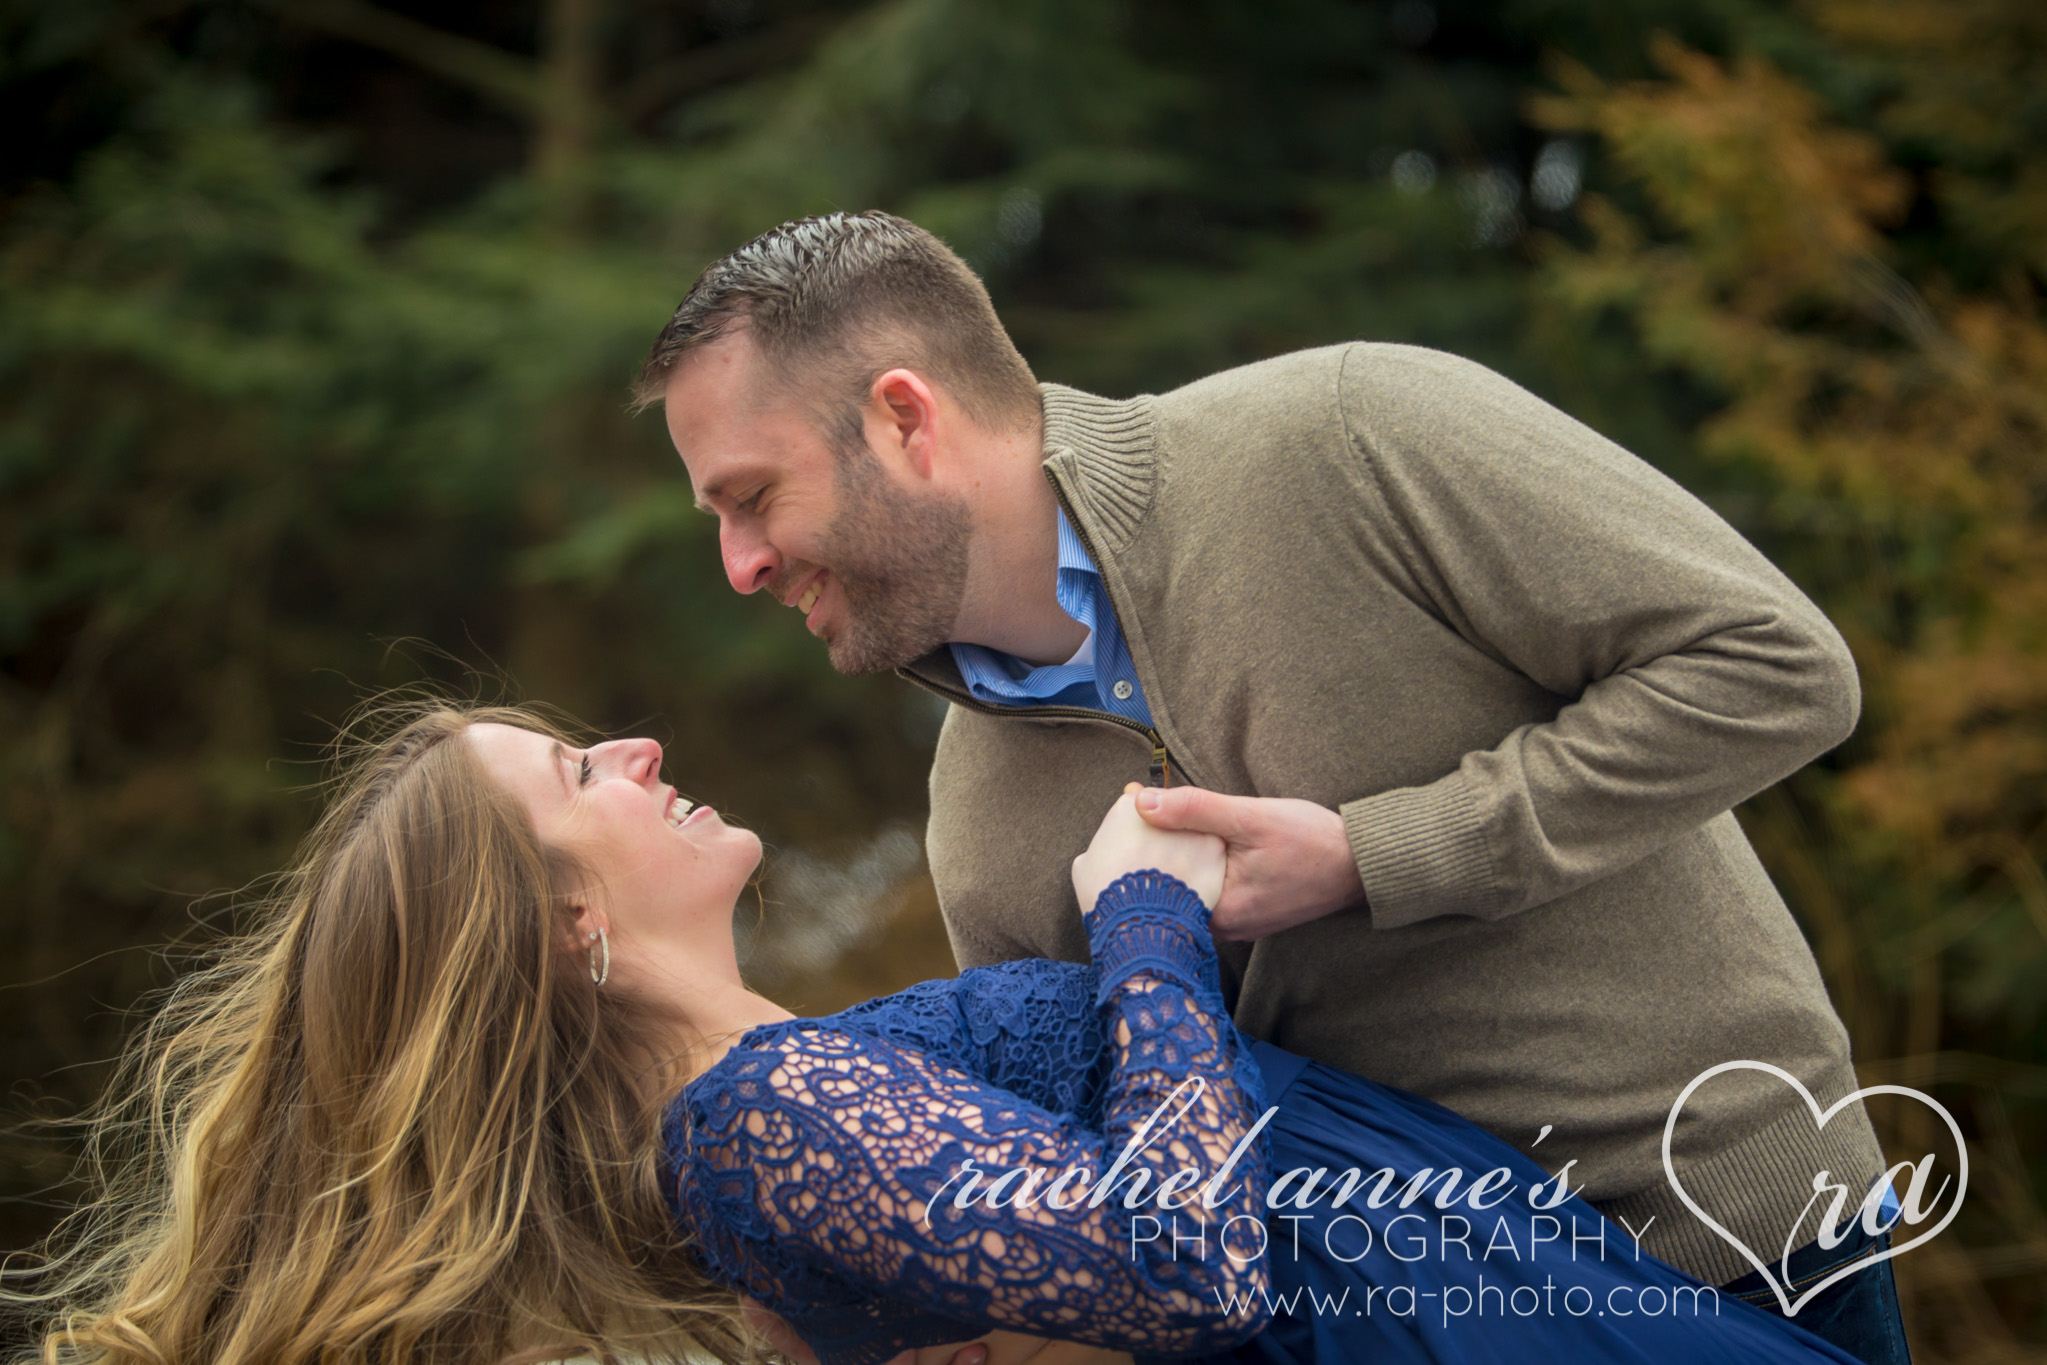 053-JKM-DUBOIS-PA-ENGAGEMENT-PHOTOGRAPHY.jpg